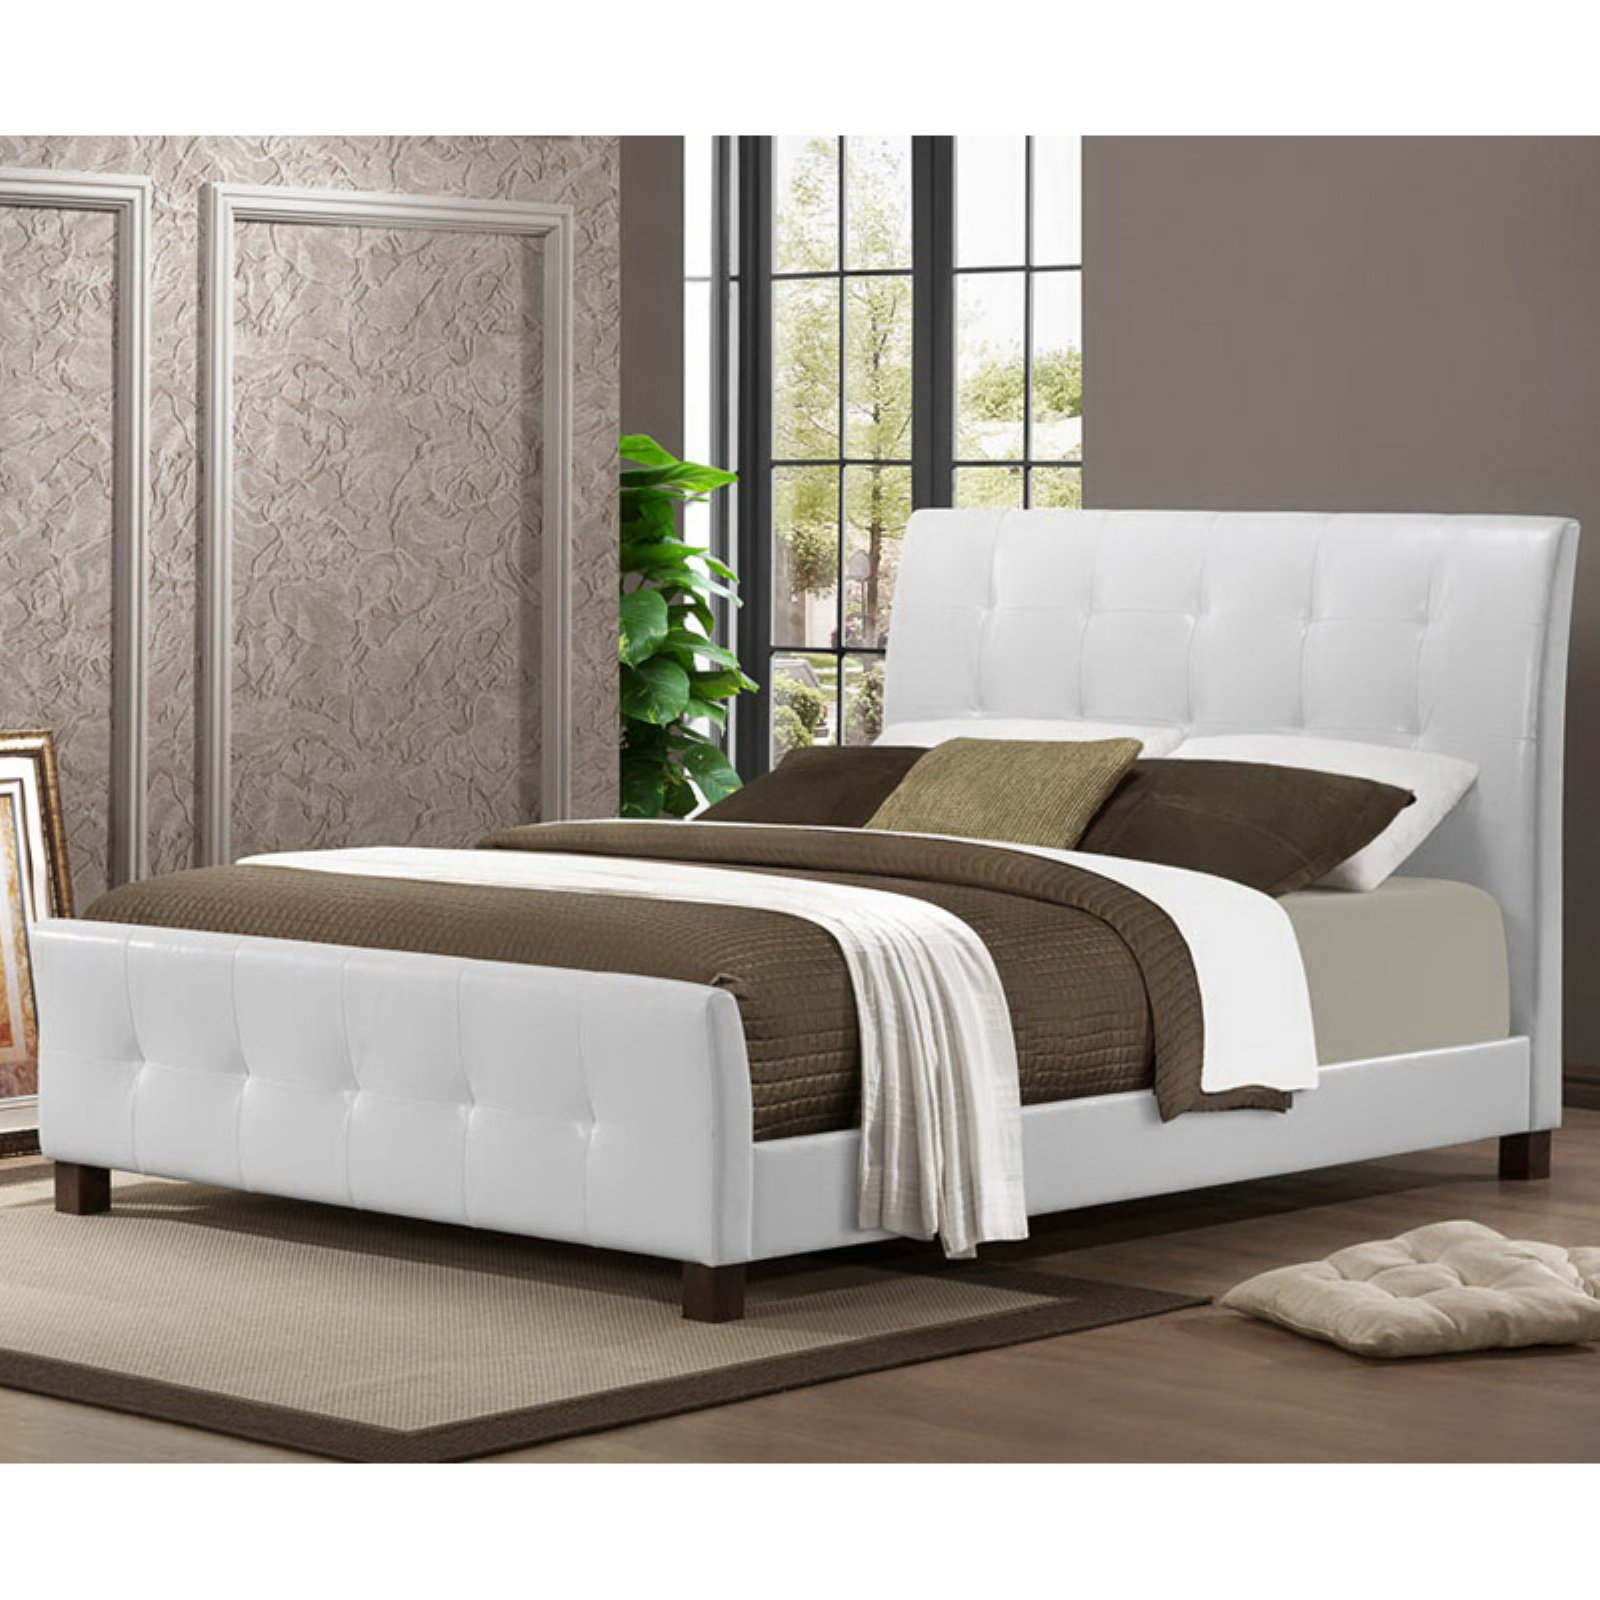 Baxton Studio Amara Upholstered Platform Bed by Wholesale Interiors